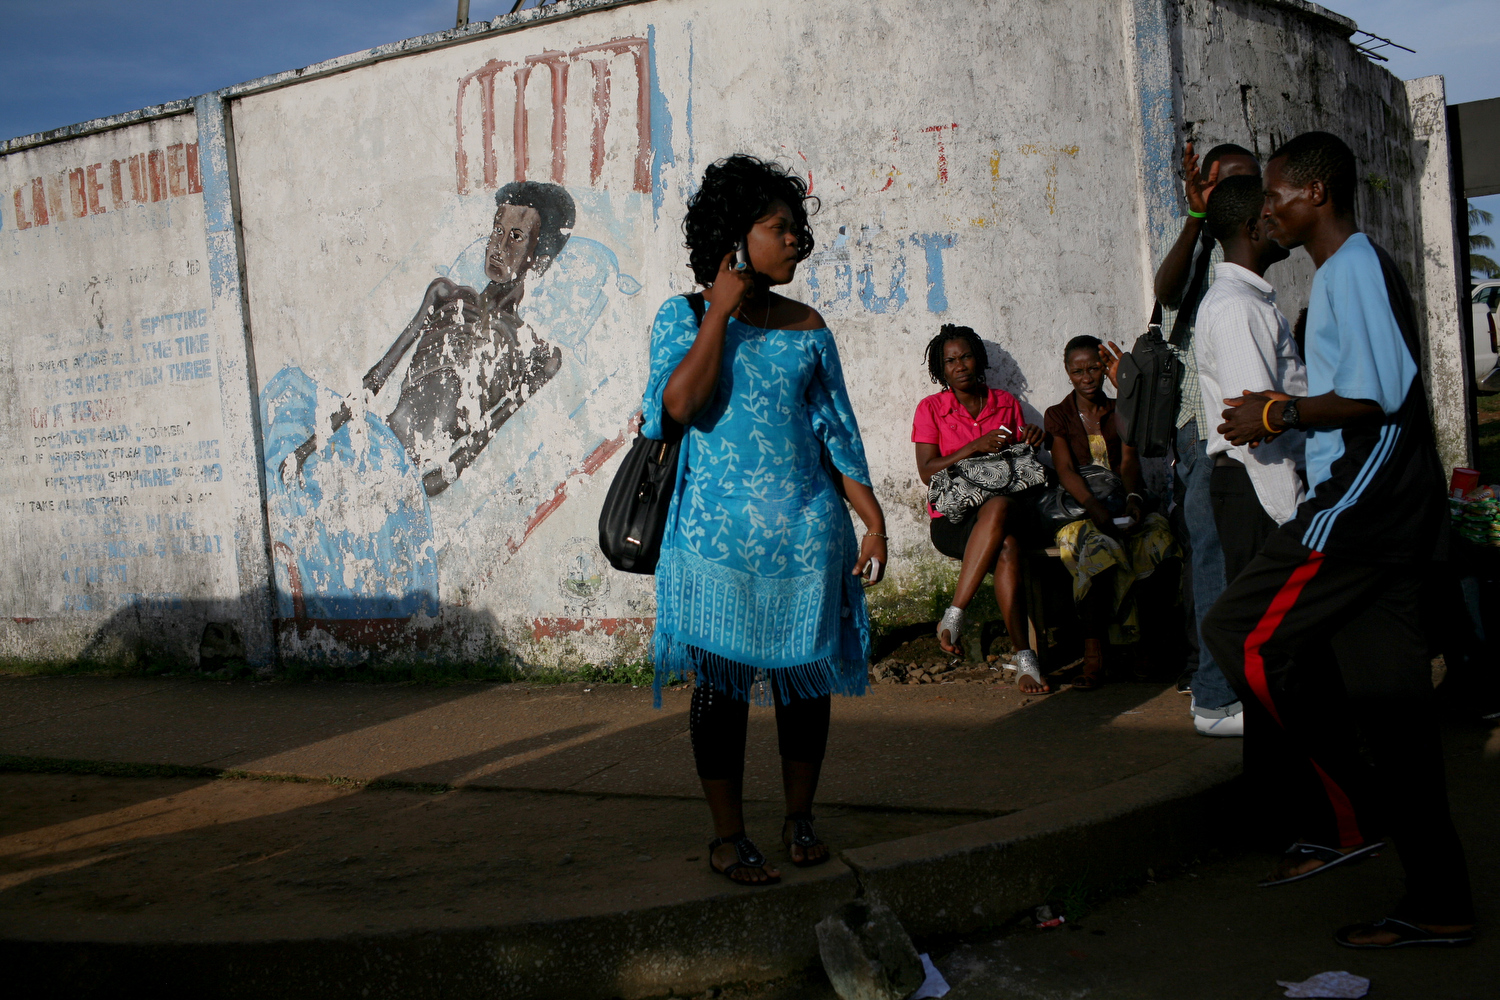 A woman waits for transportation outside of the Health Ministry in Monrovia.